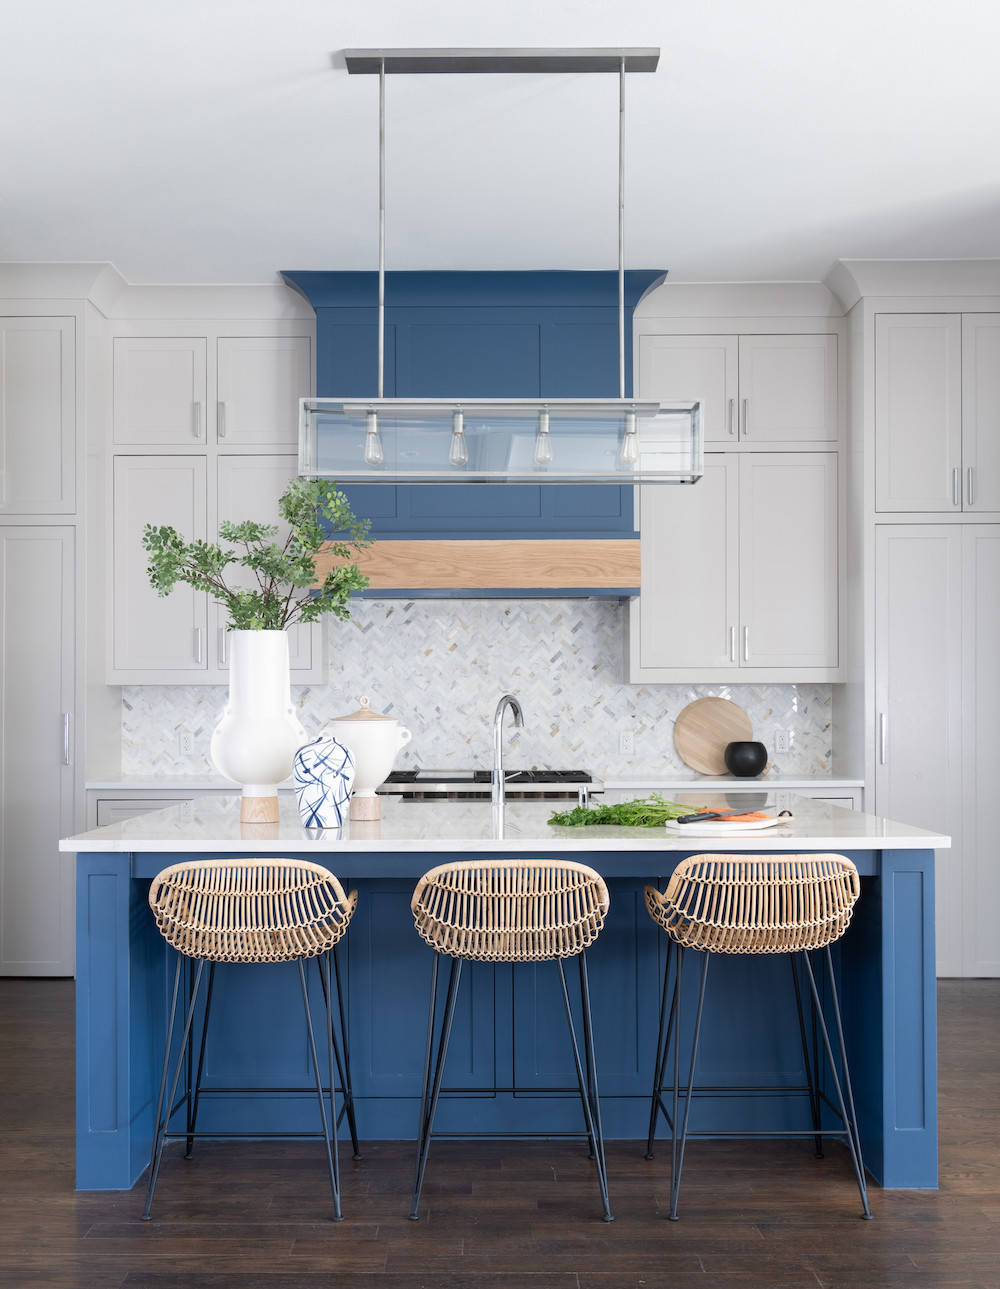 Kitchen hood color matches with the color of the island in blue